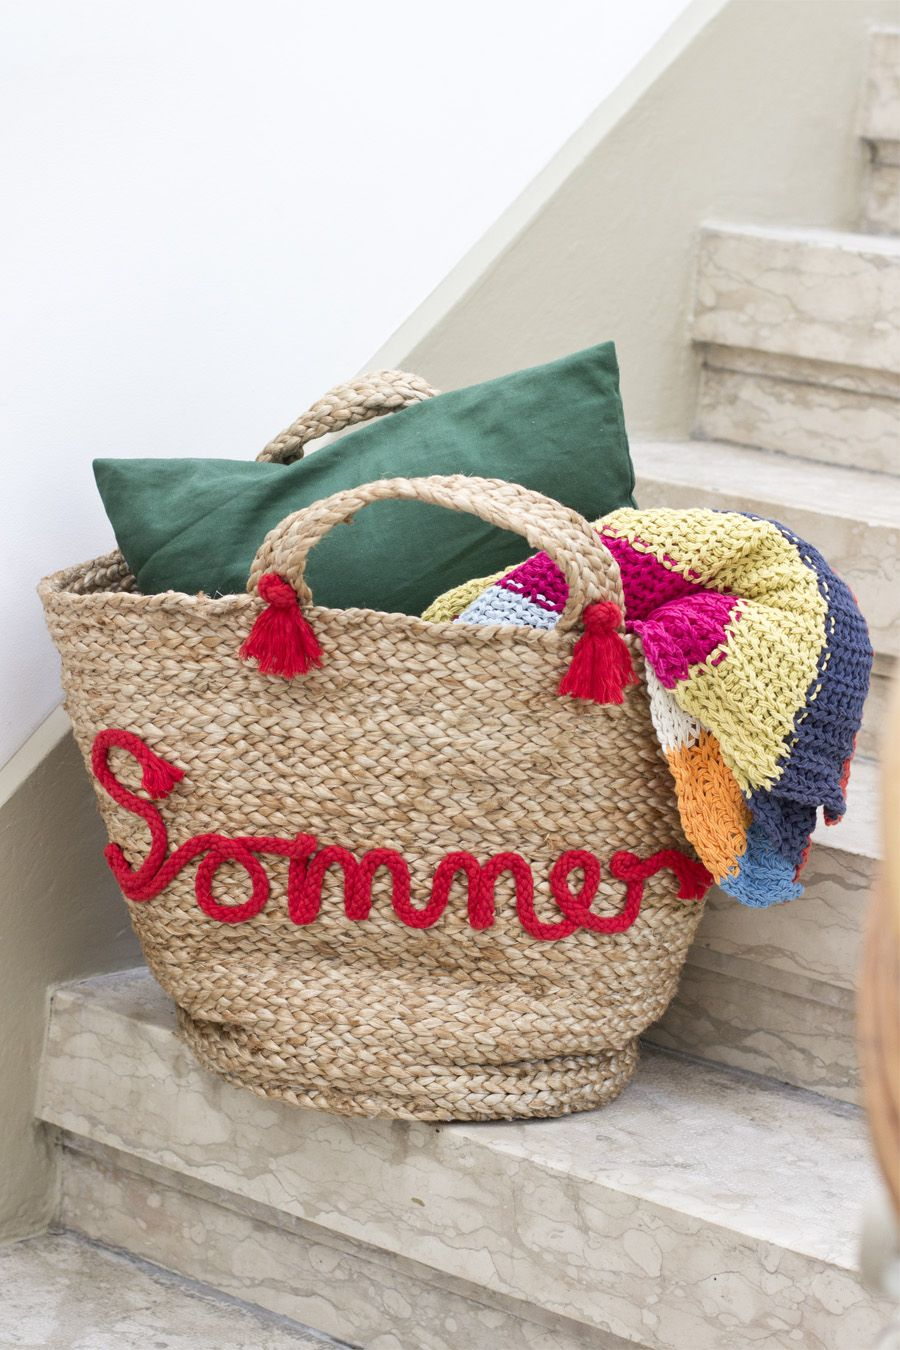 DIY embroidered beach bag | LOOK WHAT I MADE ...